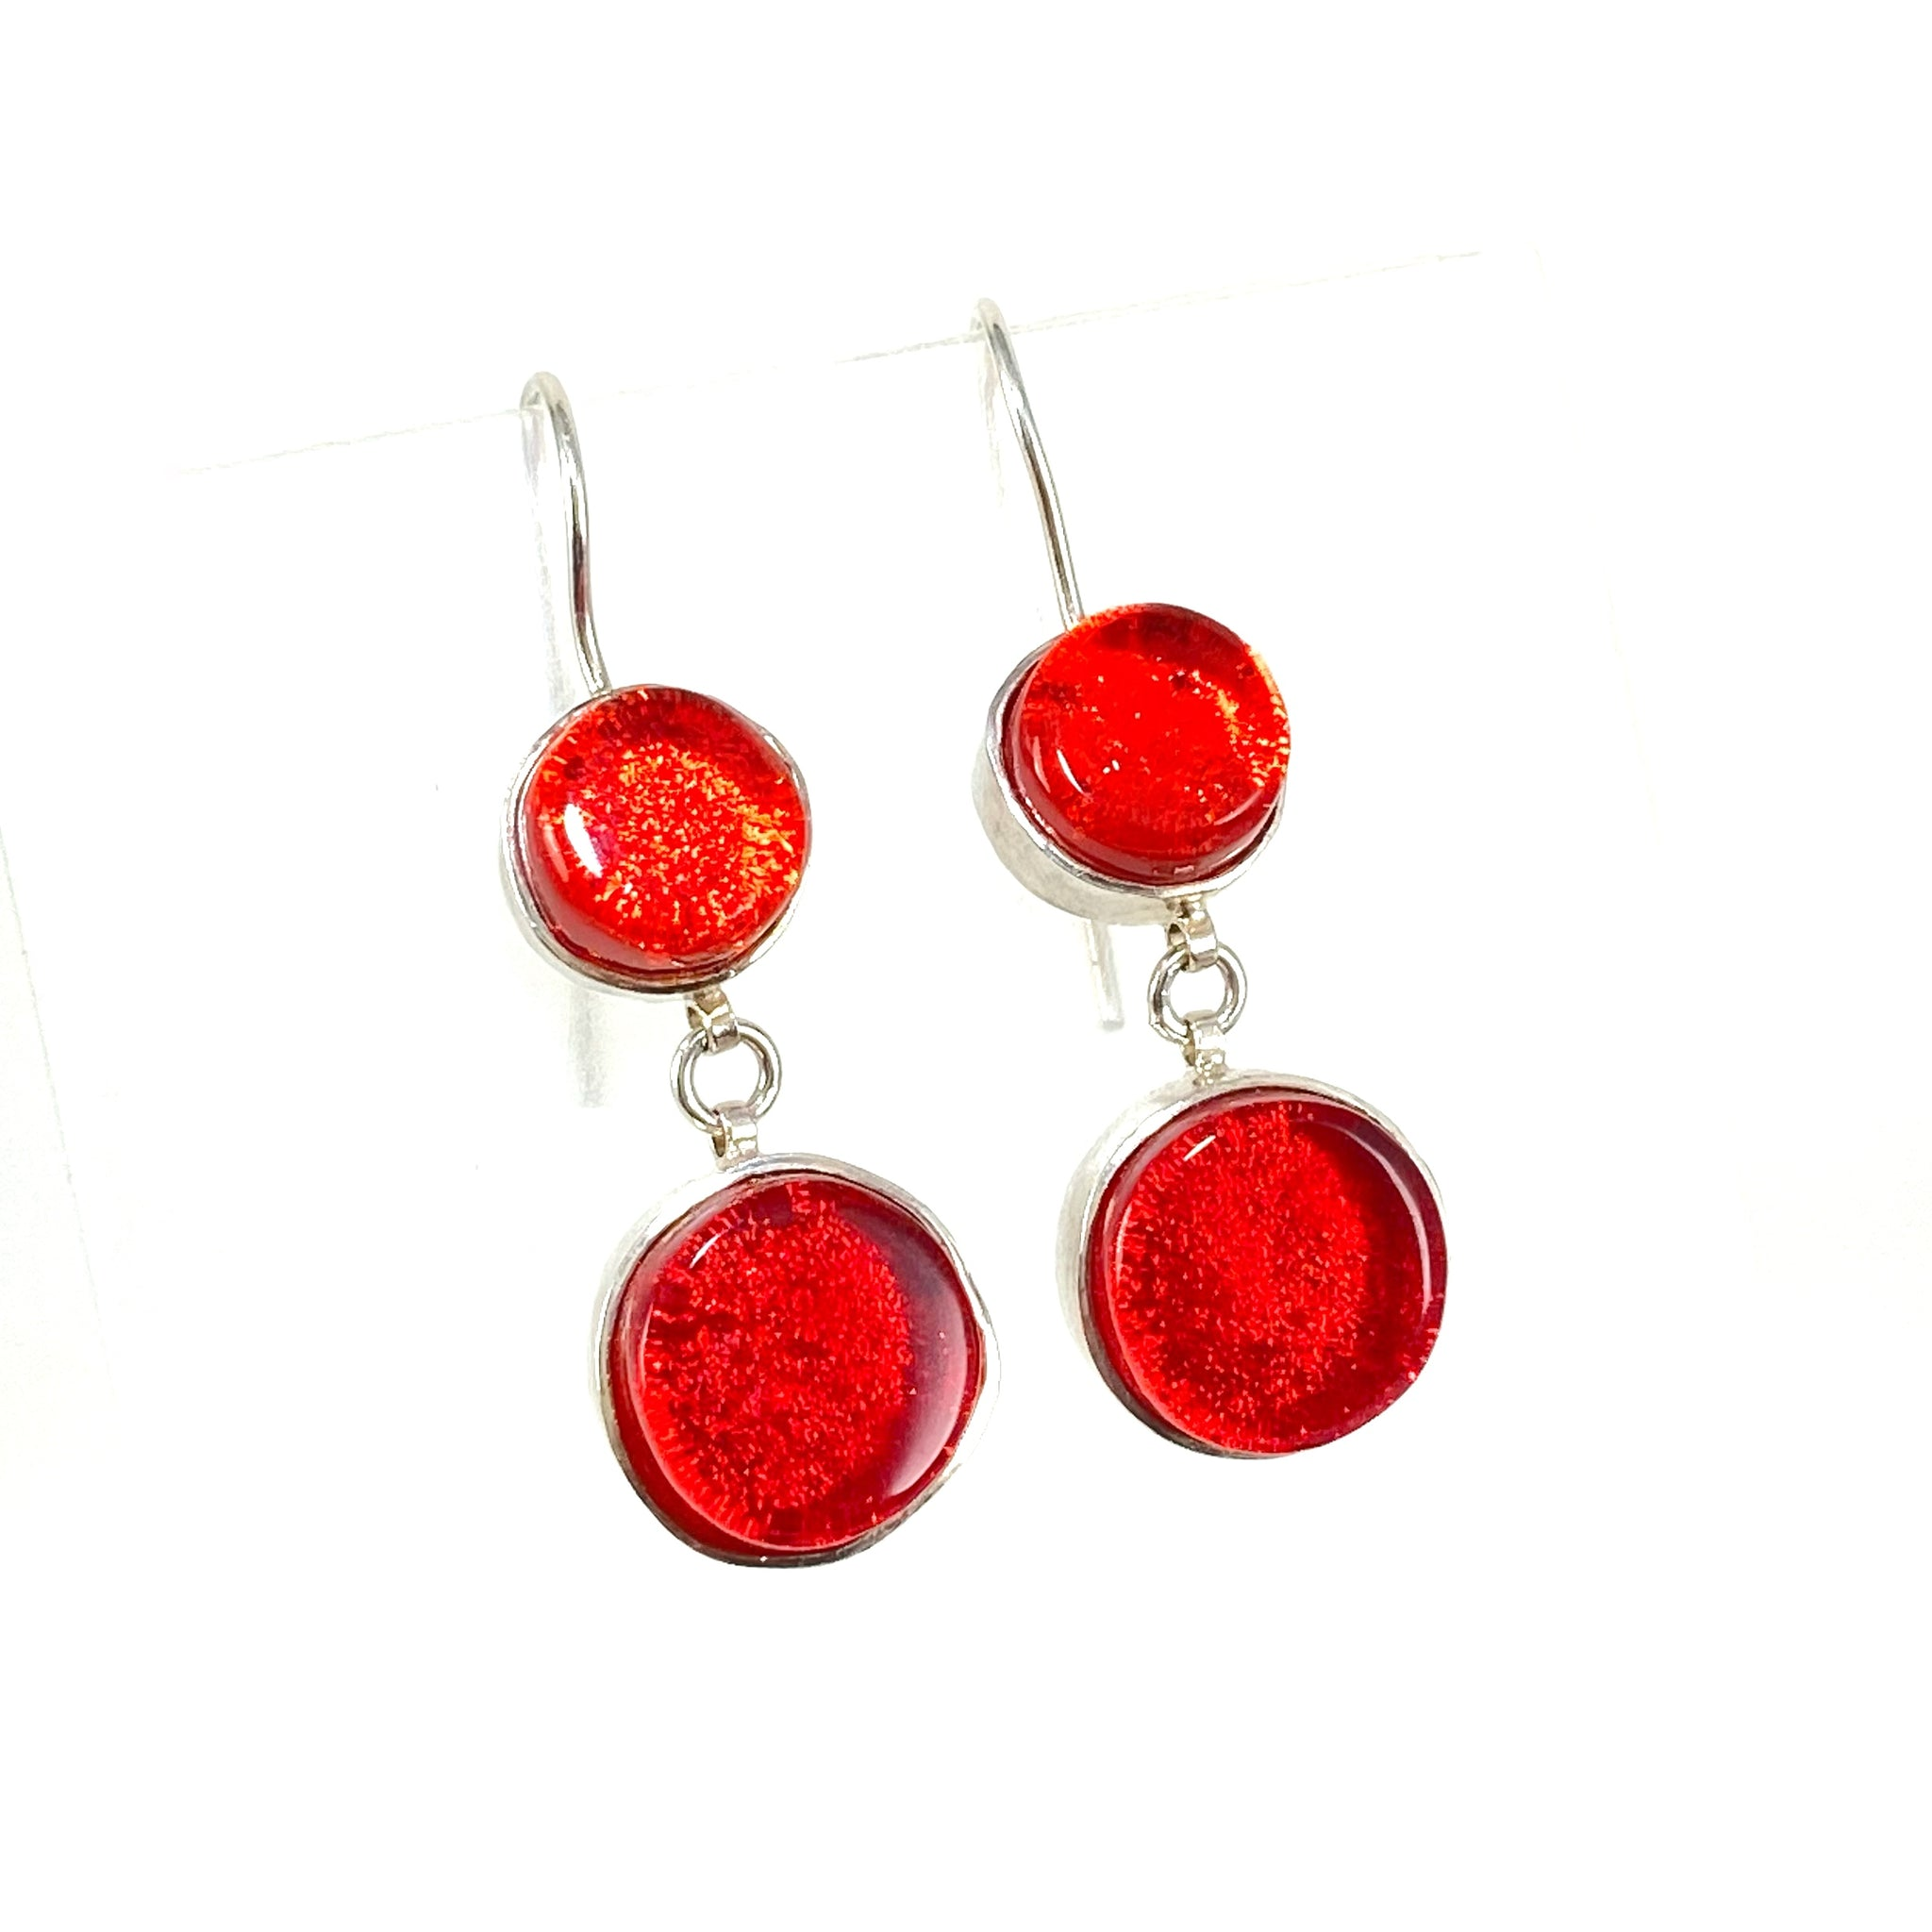 double drop earrings, sangria orange, cherry red, fused glass, glass jewelry, glass and silver jewelry, handmade, handcrafted, American Craft, hand fabricated jewelry, hand fabricated jewellery,  Athen, Georgia, colorful jewelry, sparkle, bullseye glass, dichroic glass, art jewelry